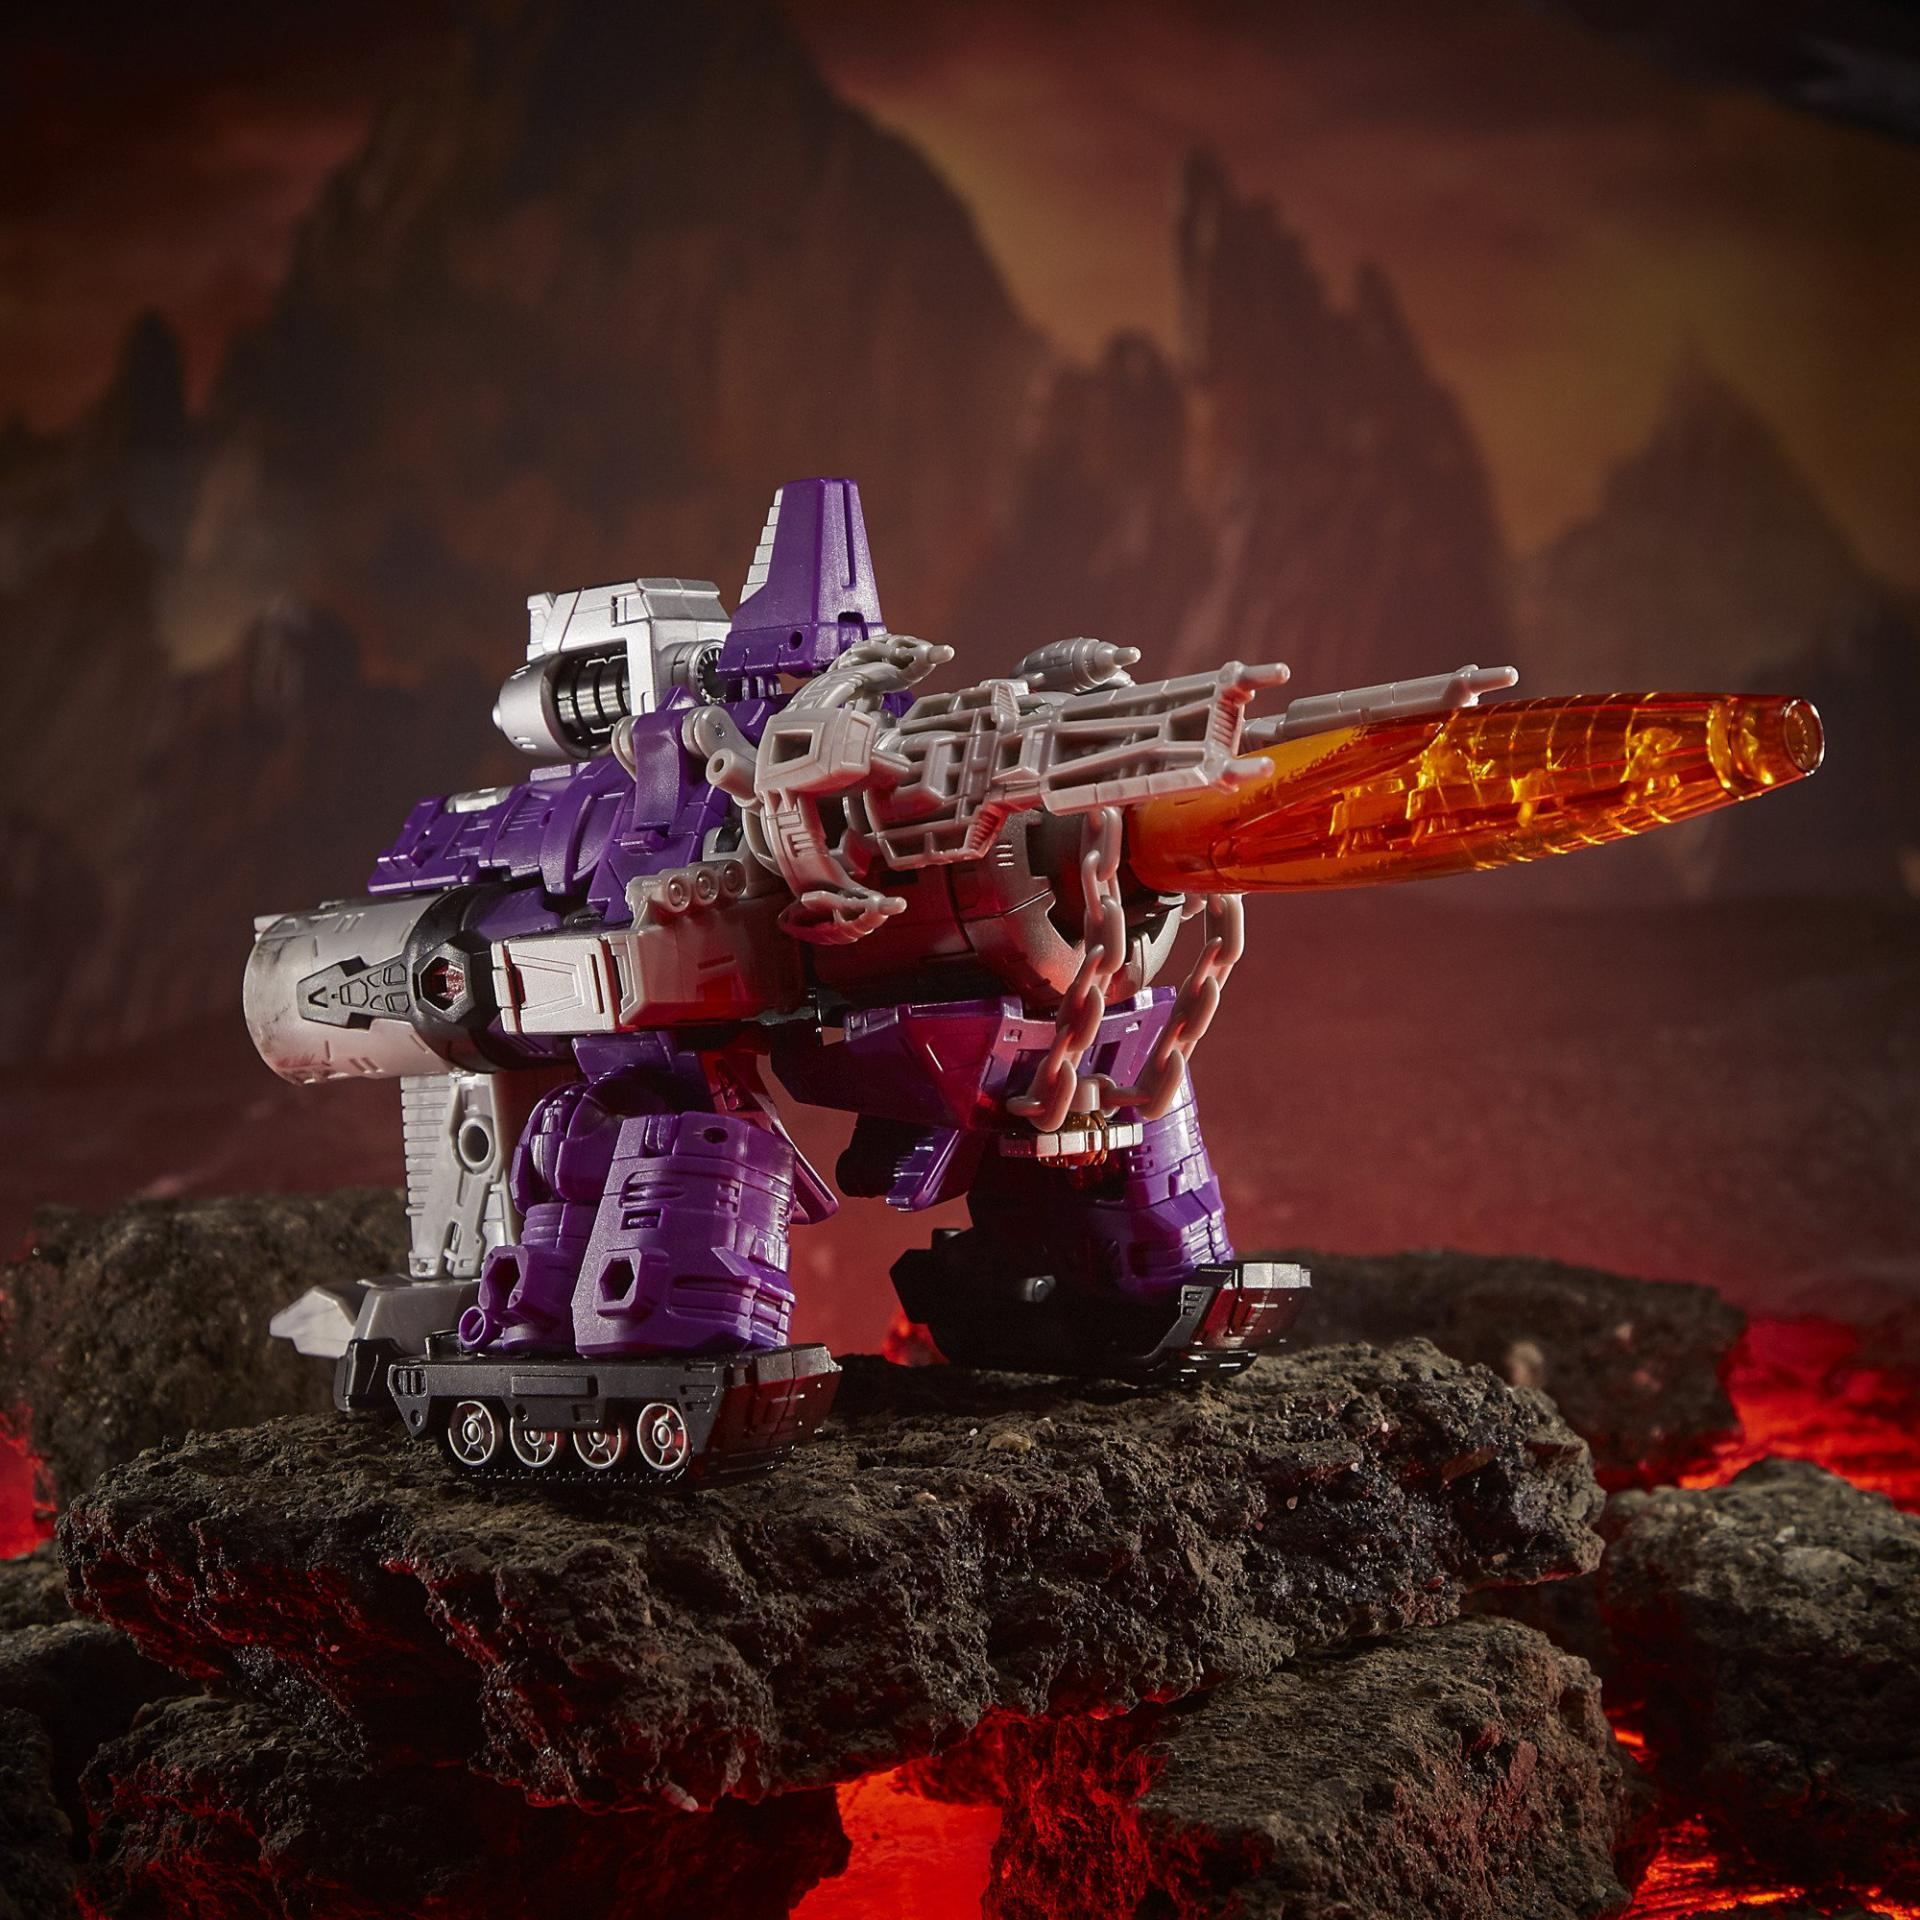 Transformers hasbro generations war for cybertron kingdom leader wfc k28 galvatron2